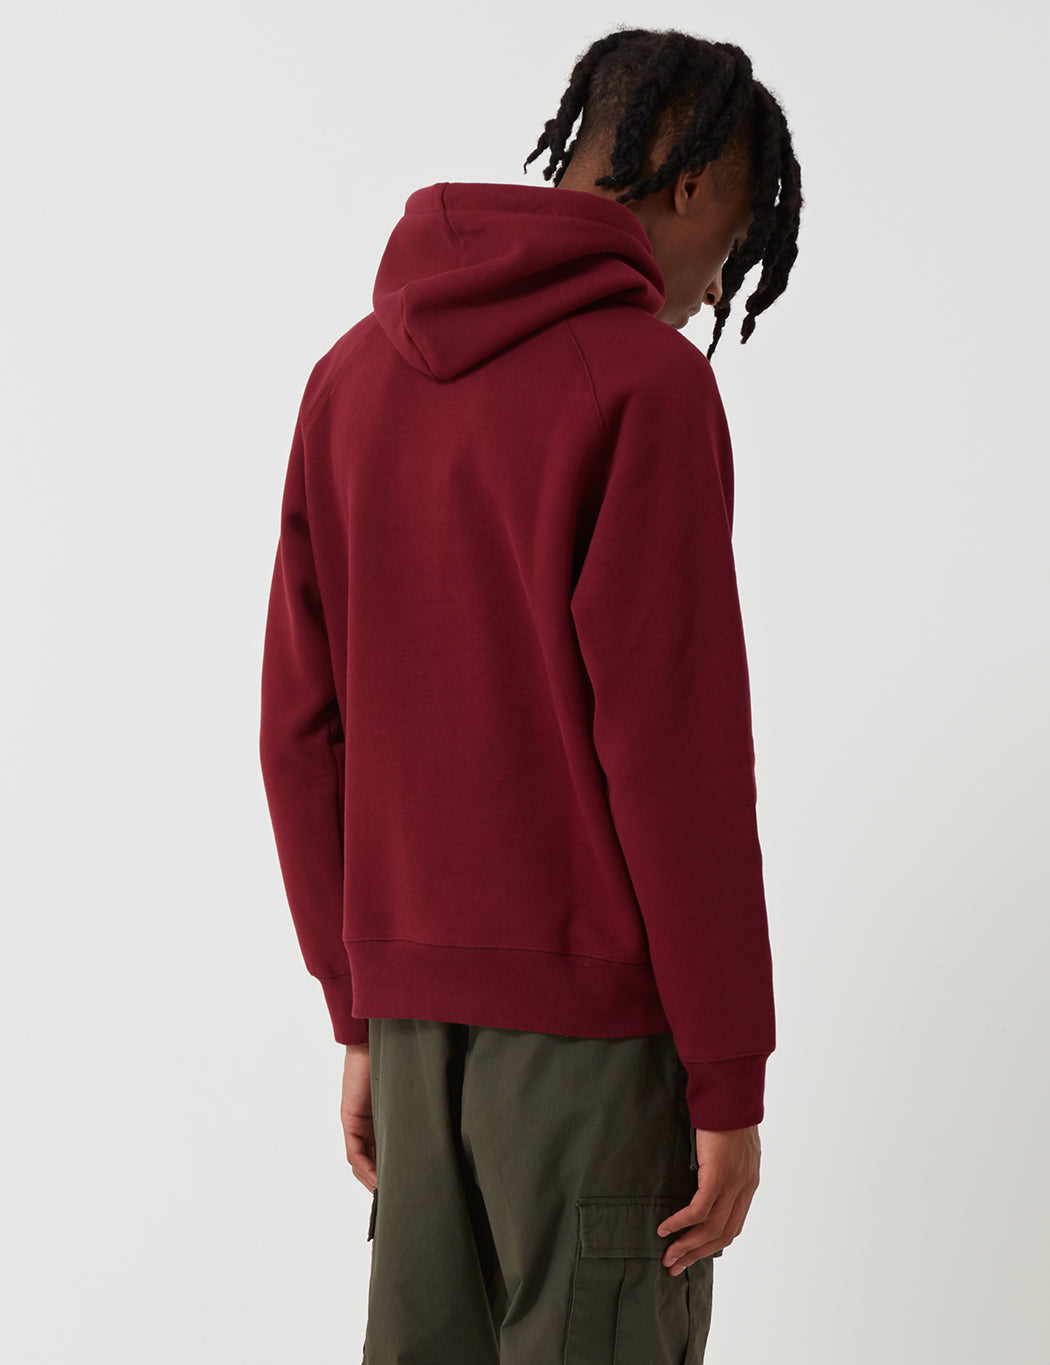 Carhartt Chase Hooded Sweatshirt - Mulberry